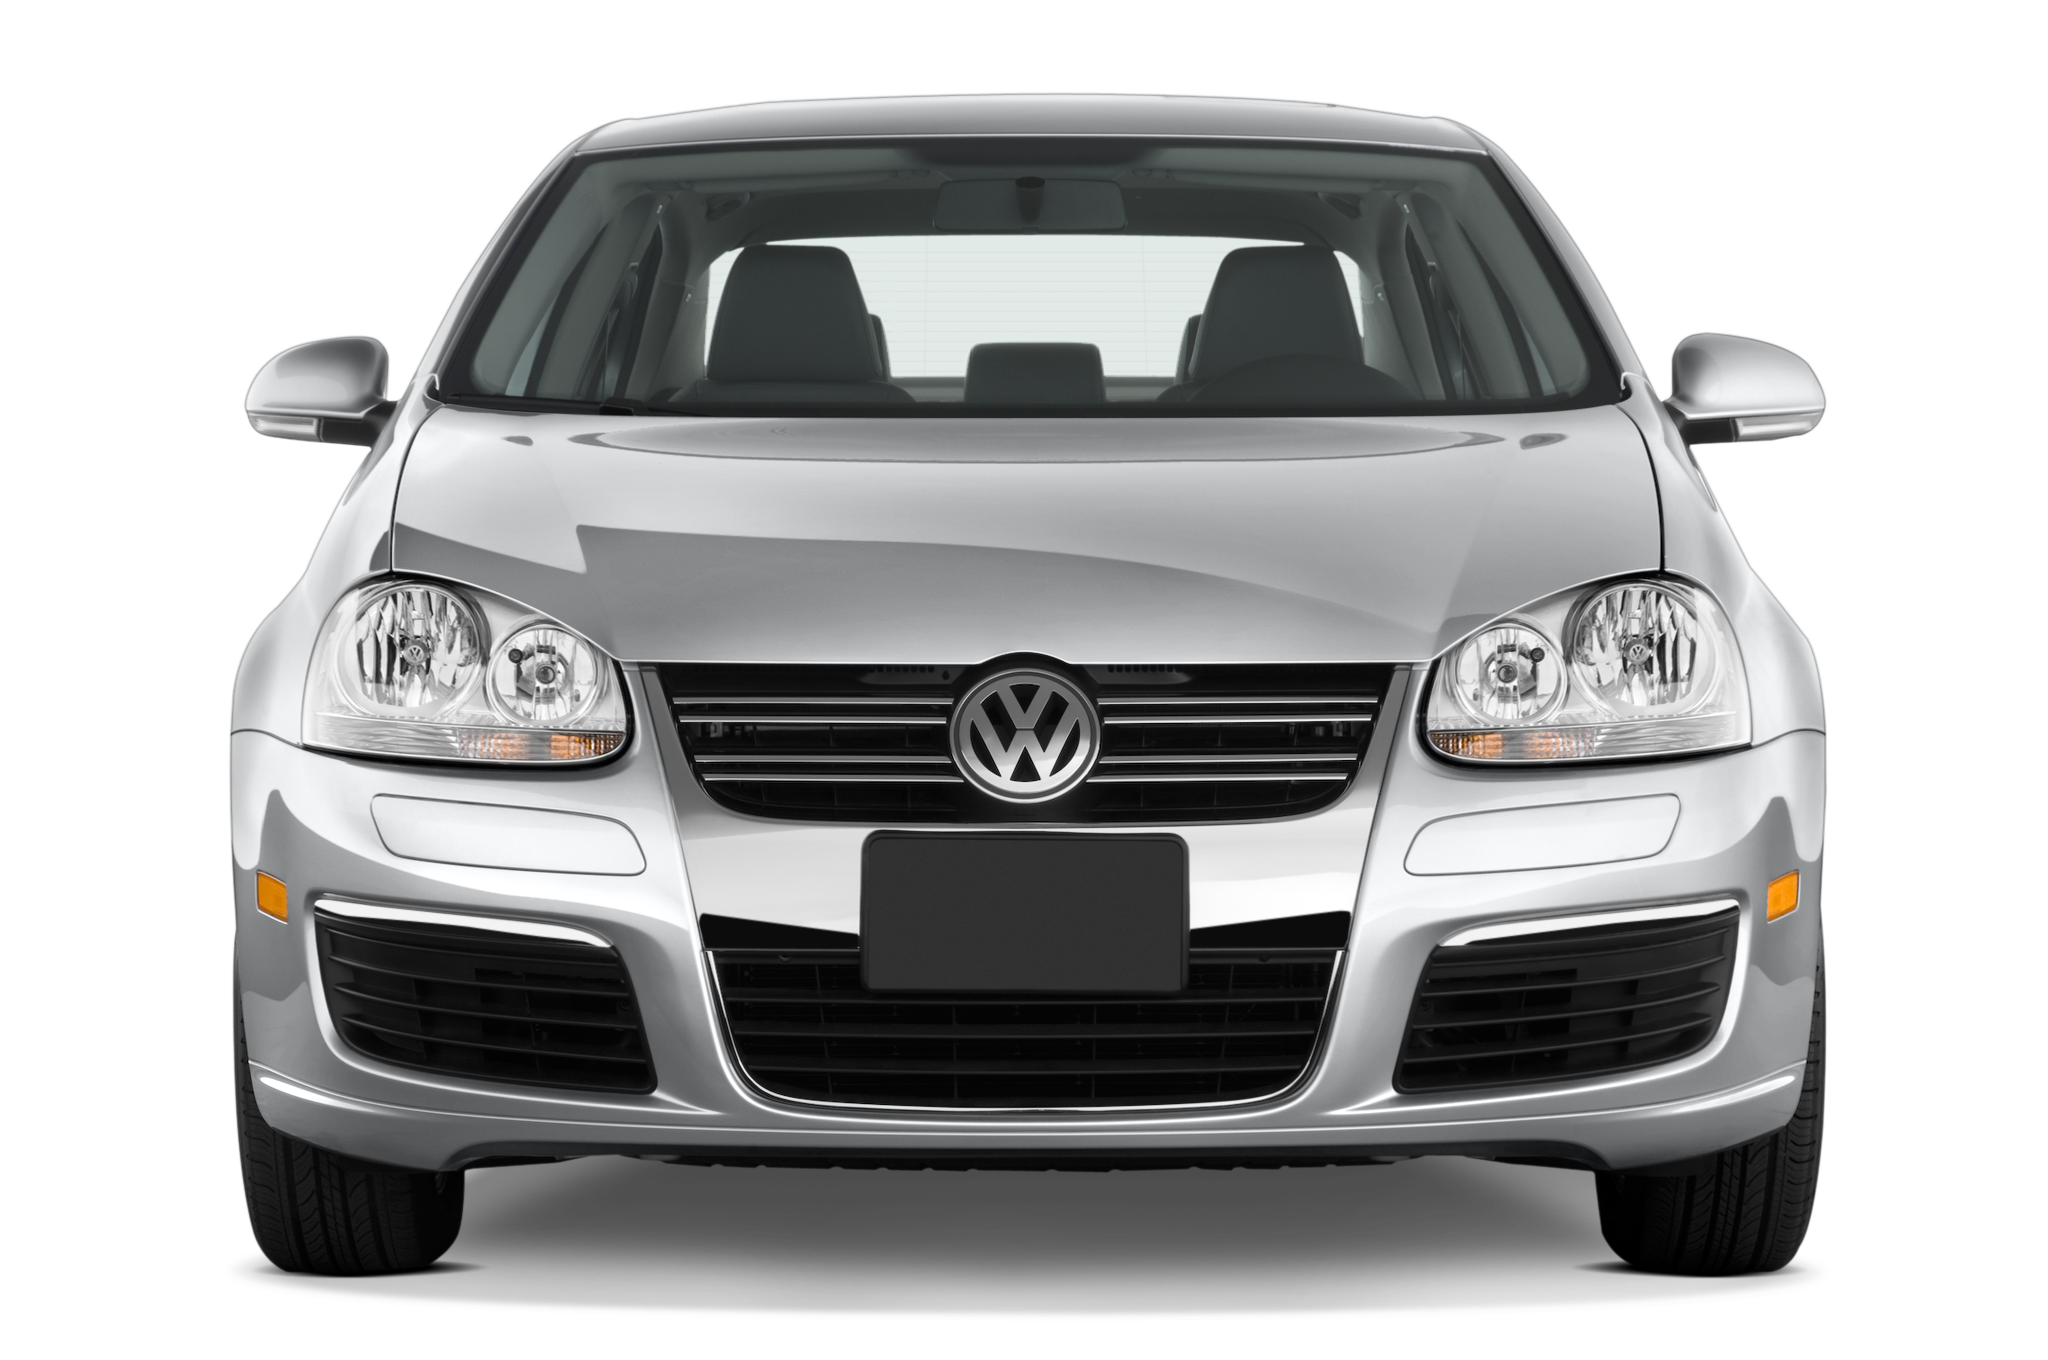 2010 Volkswagen Jetta Overview - MSN Autos